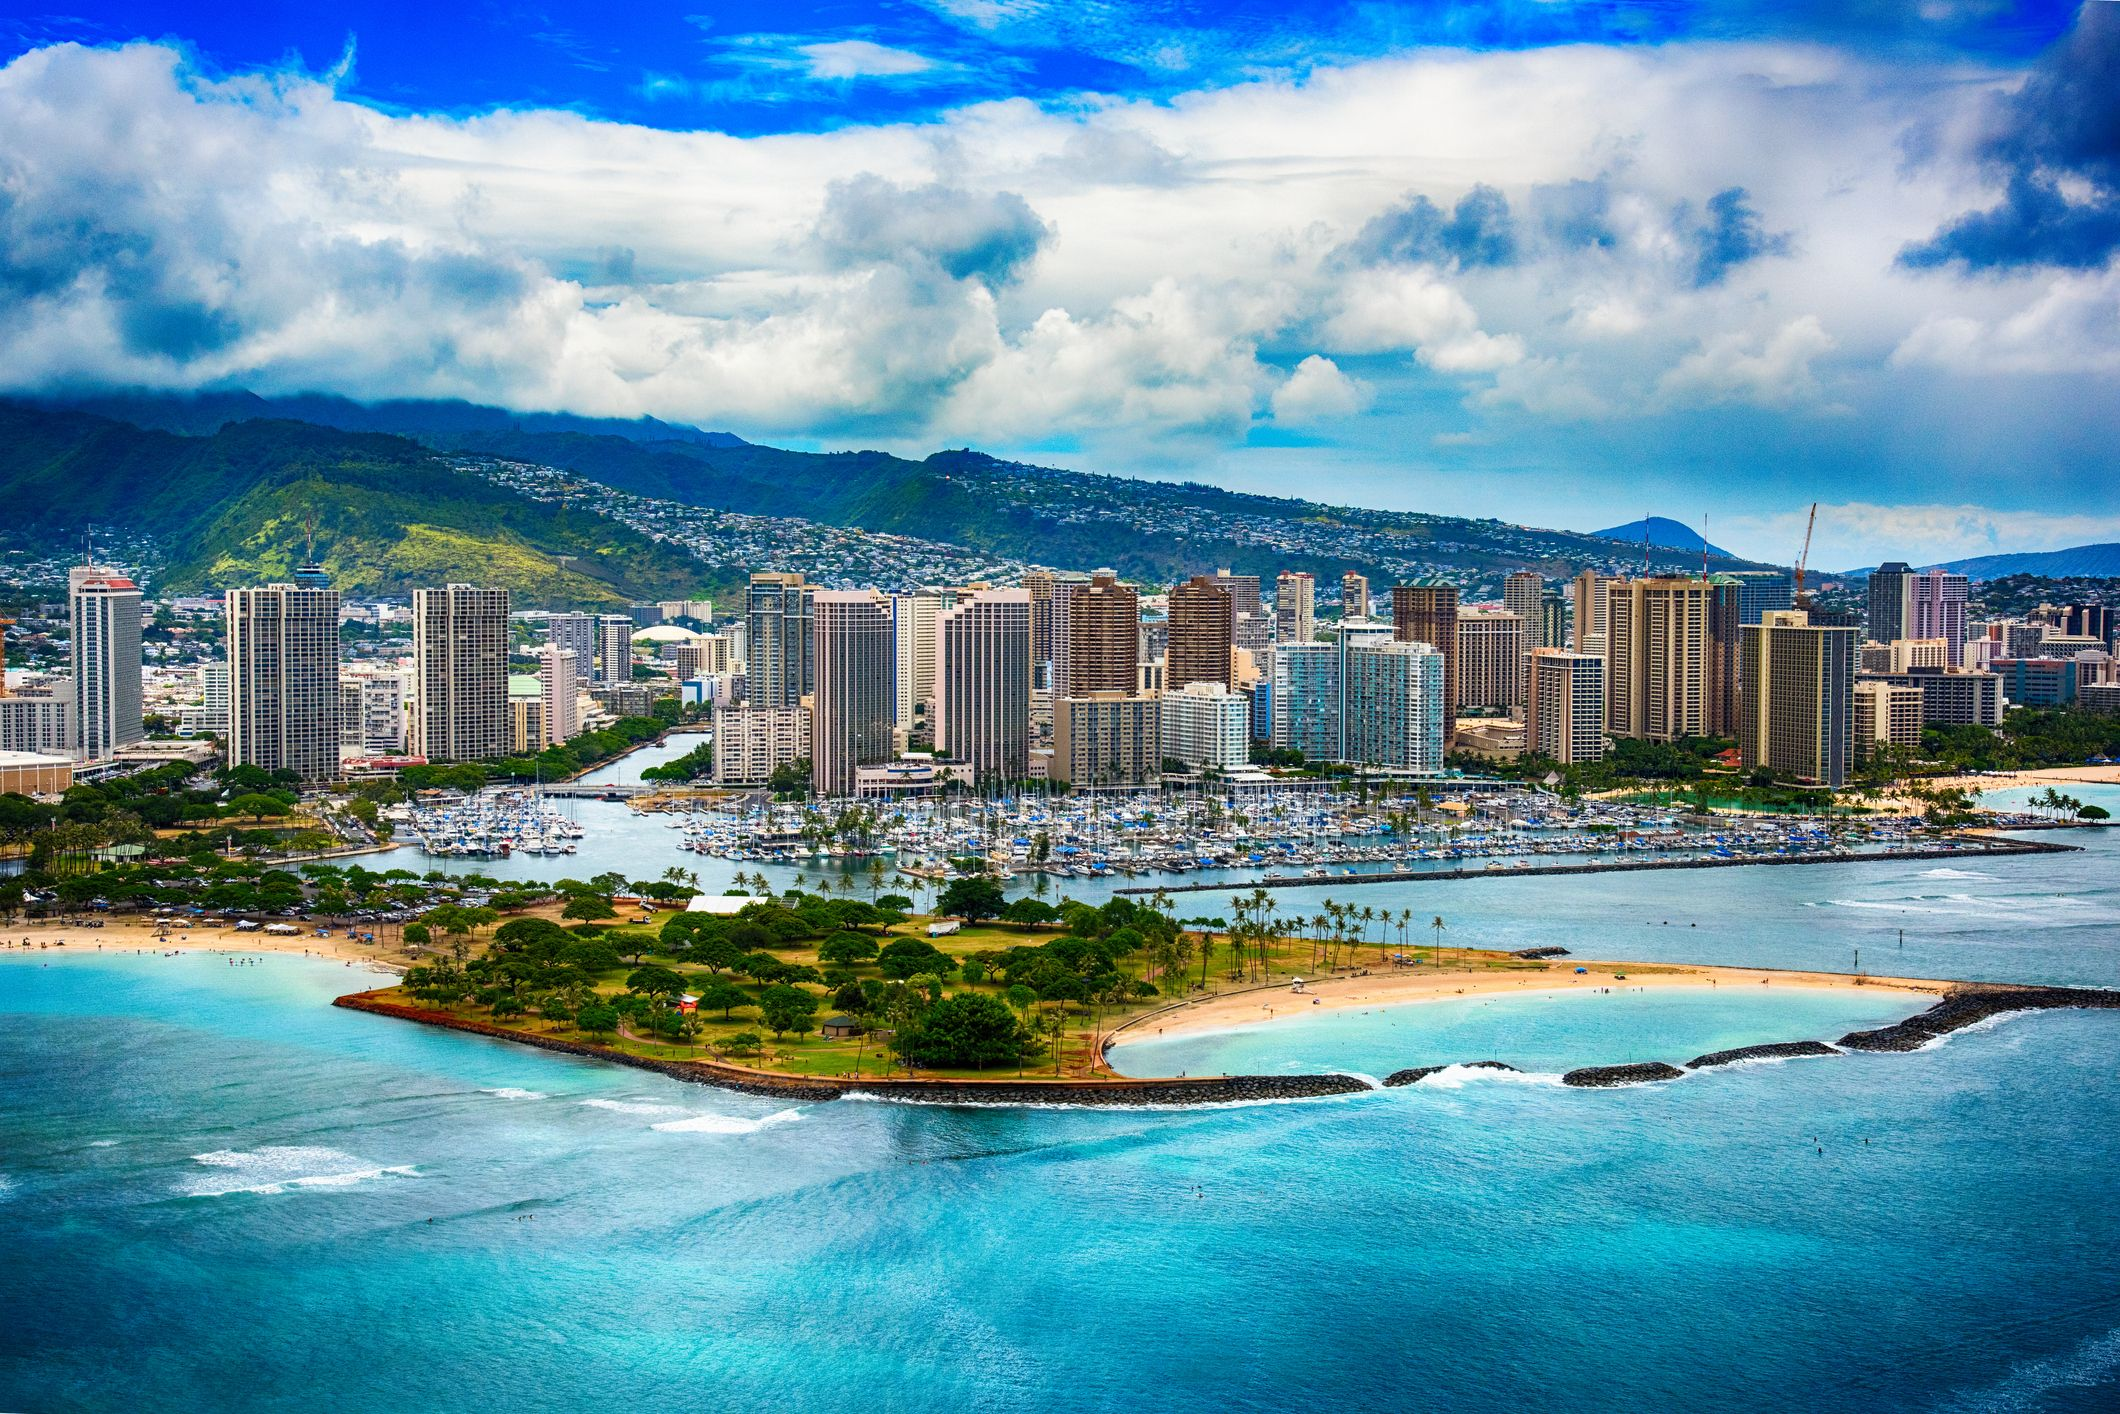 Skyline of Honolulu - Hawaii